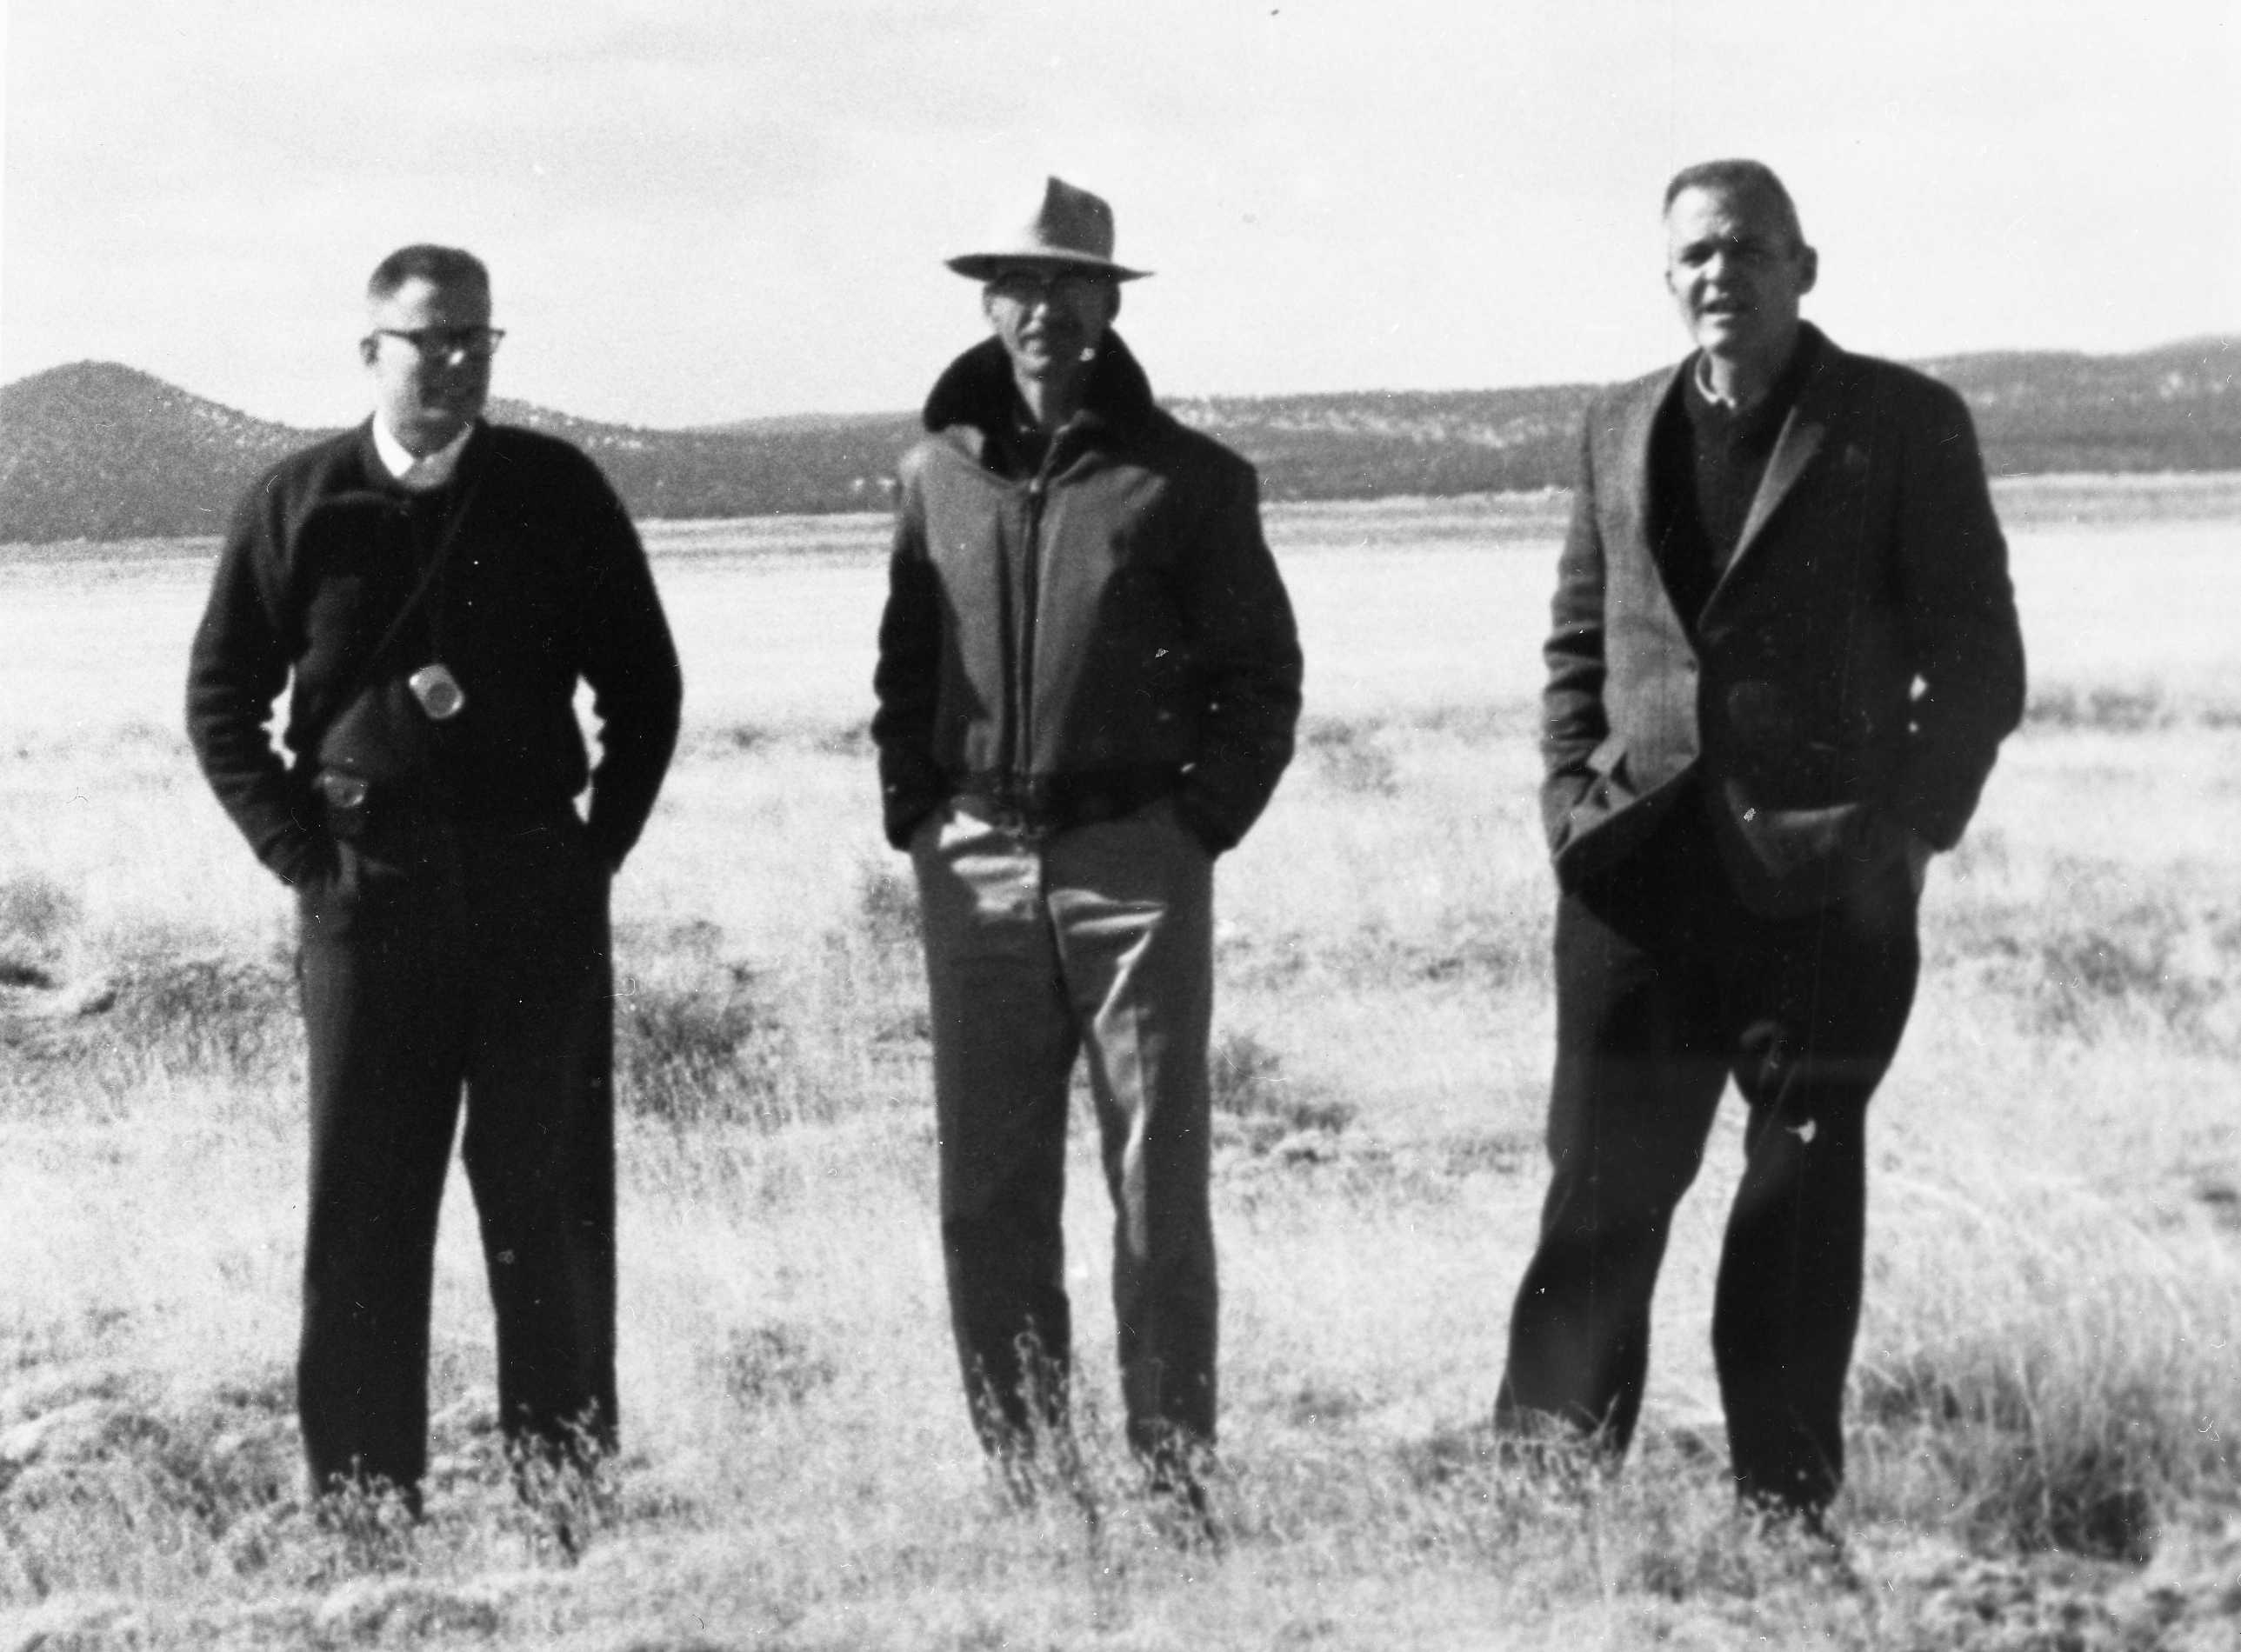 Searching for a VLA Site, February 1966